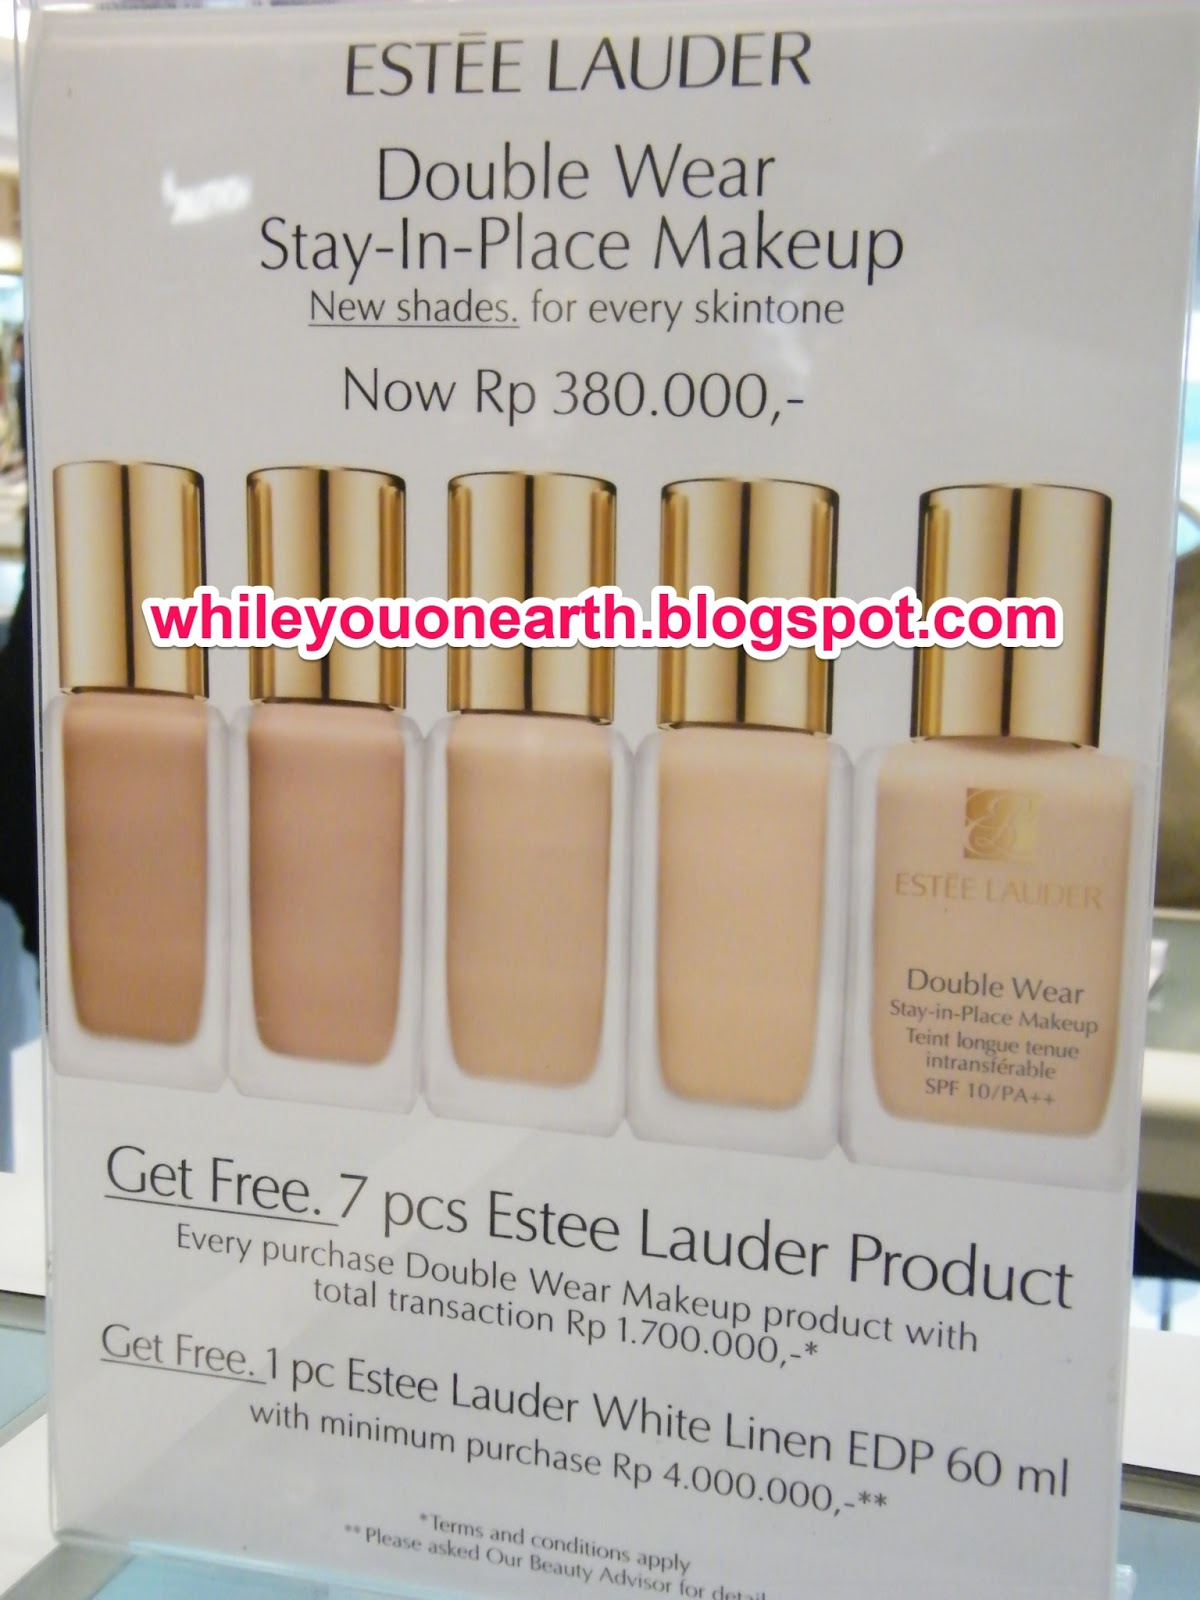 While you on earth..: Estee Lauder Double Wear Stay-in ...